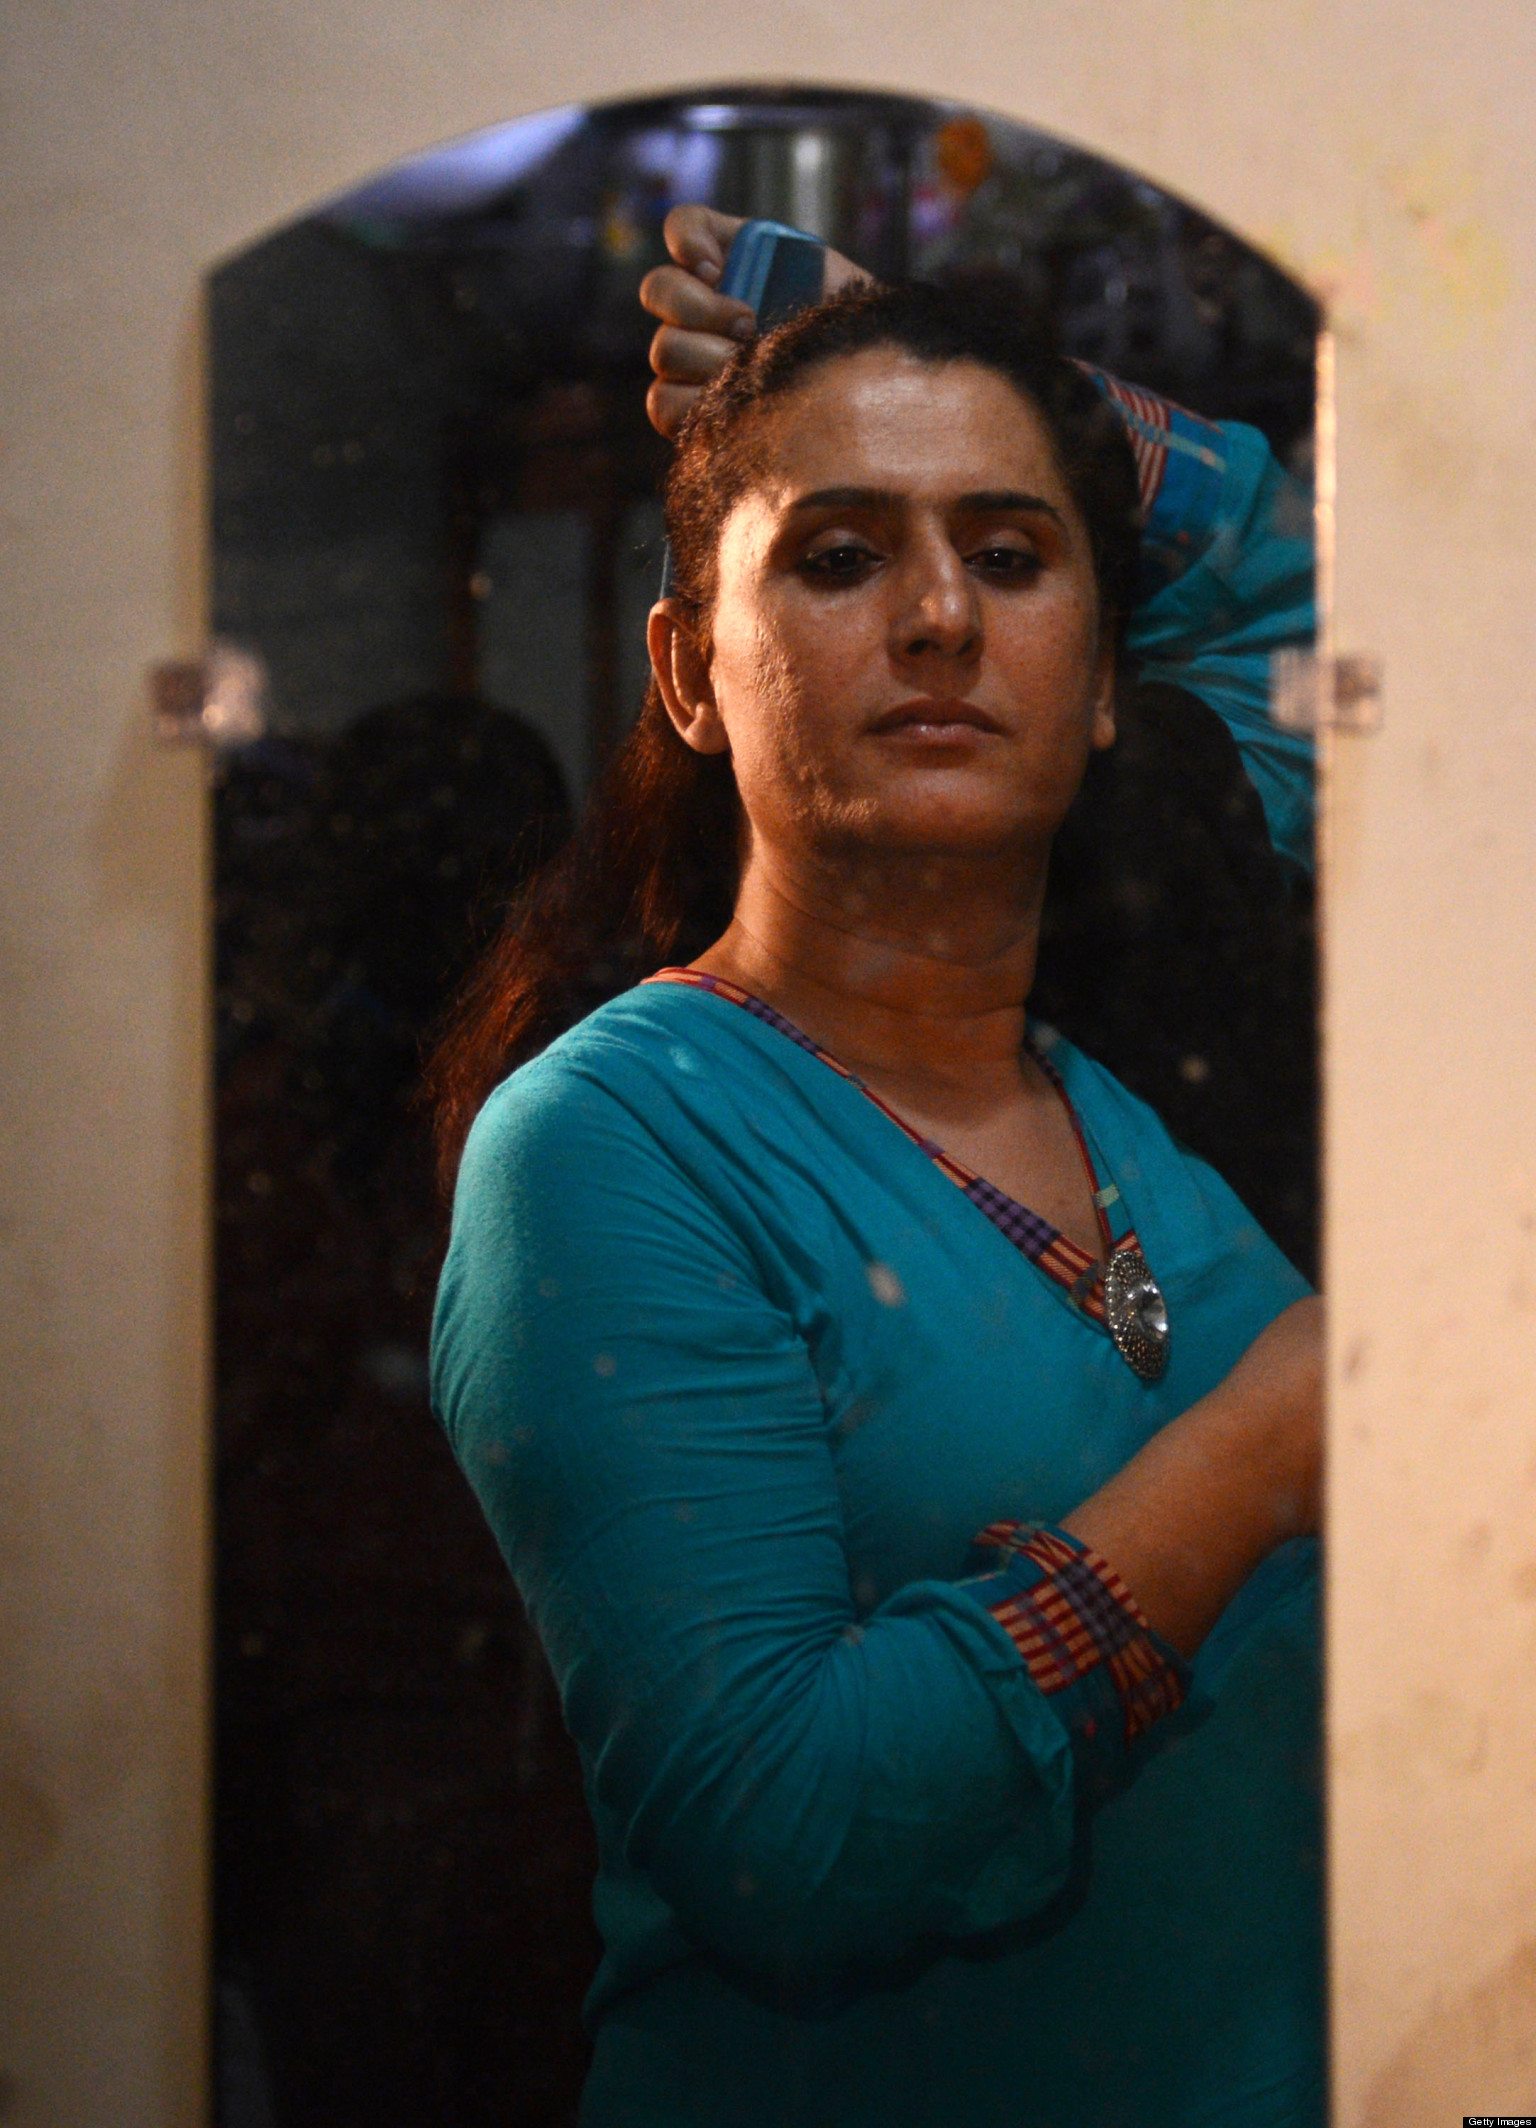 transgender and hijra community A continued lack of acceptance and opportunity means india's hijras are often  reluctant to take advantage of a 2014 law permitting a formal.